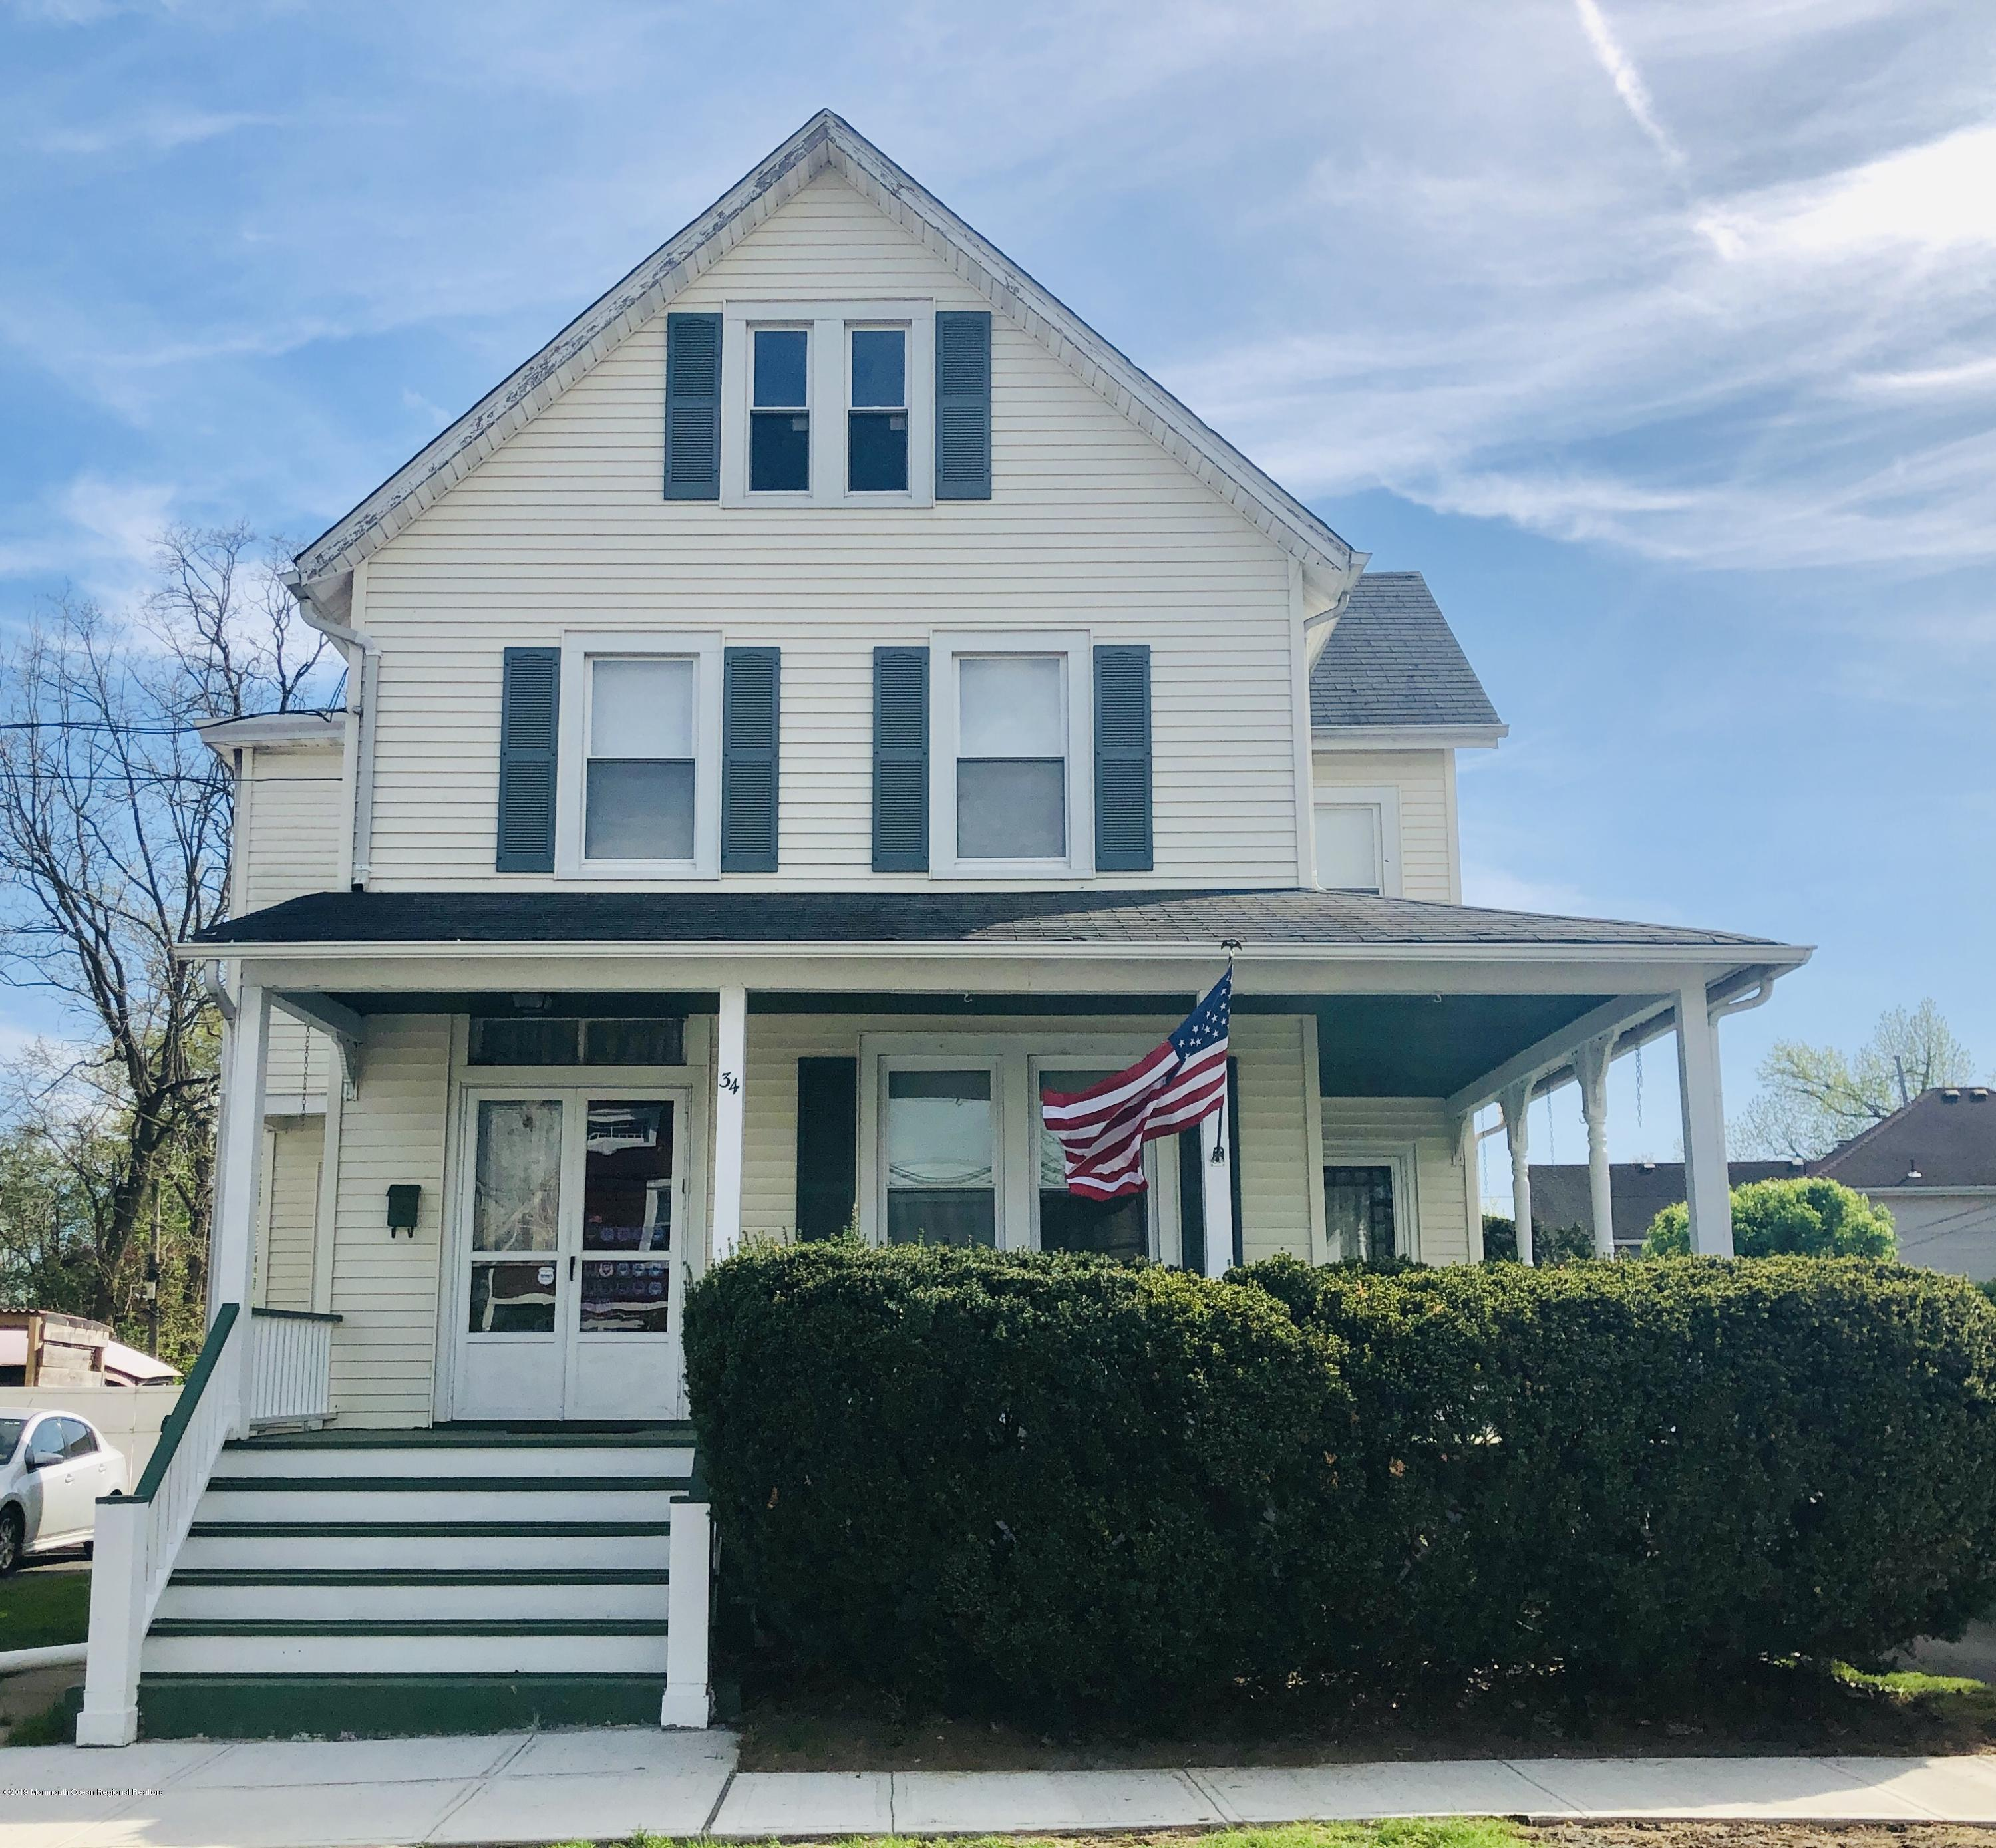 Photo of 34 Mclean Street, Freehold, NJ 07728